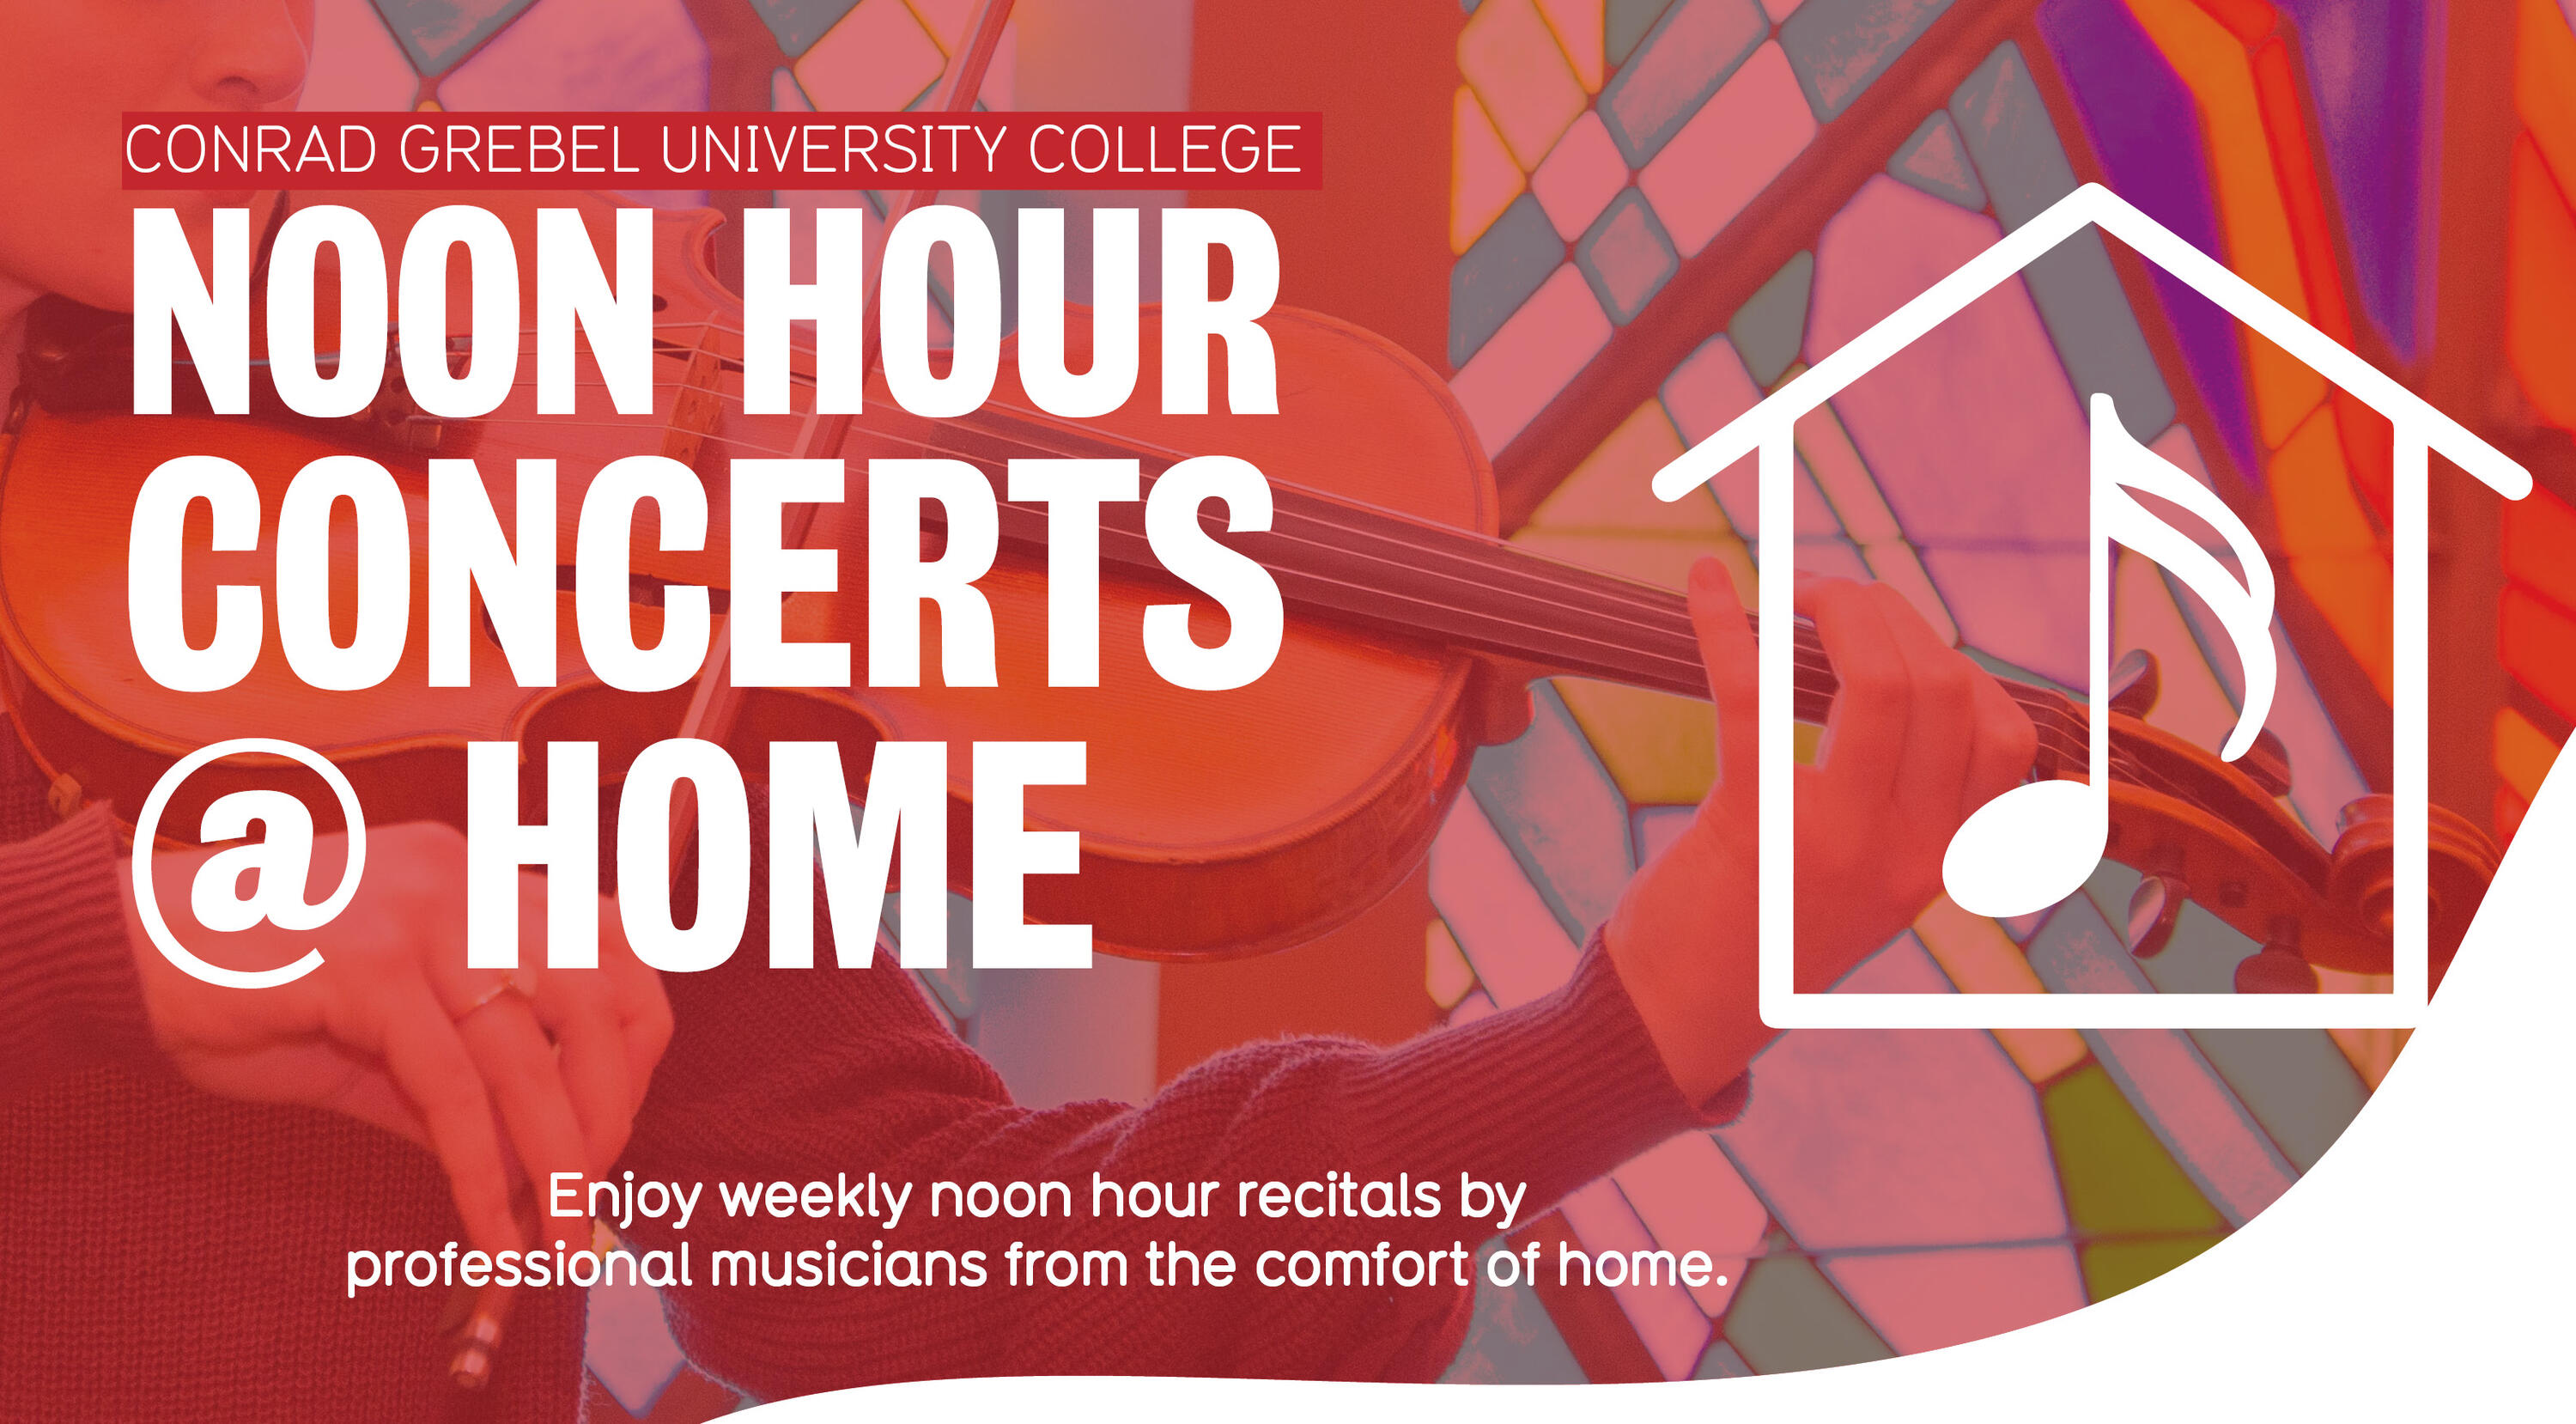 Noon Hour Concerts at Home. Enjoy weekly noon hour recitals by professional musicians from the comfort of home.